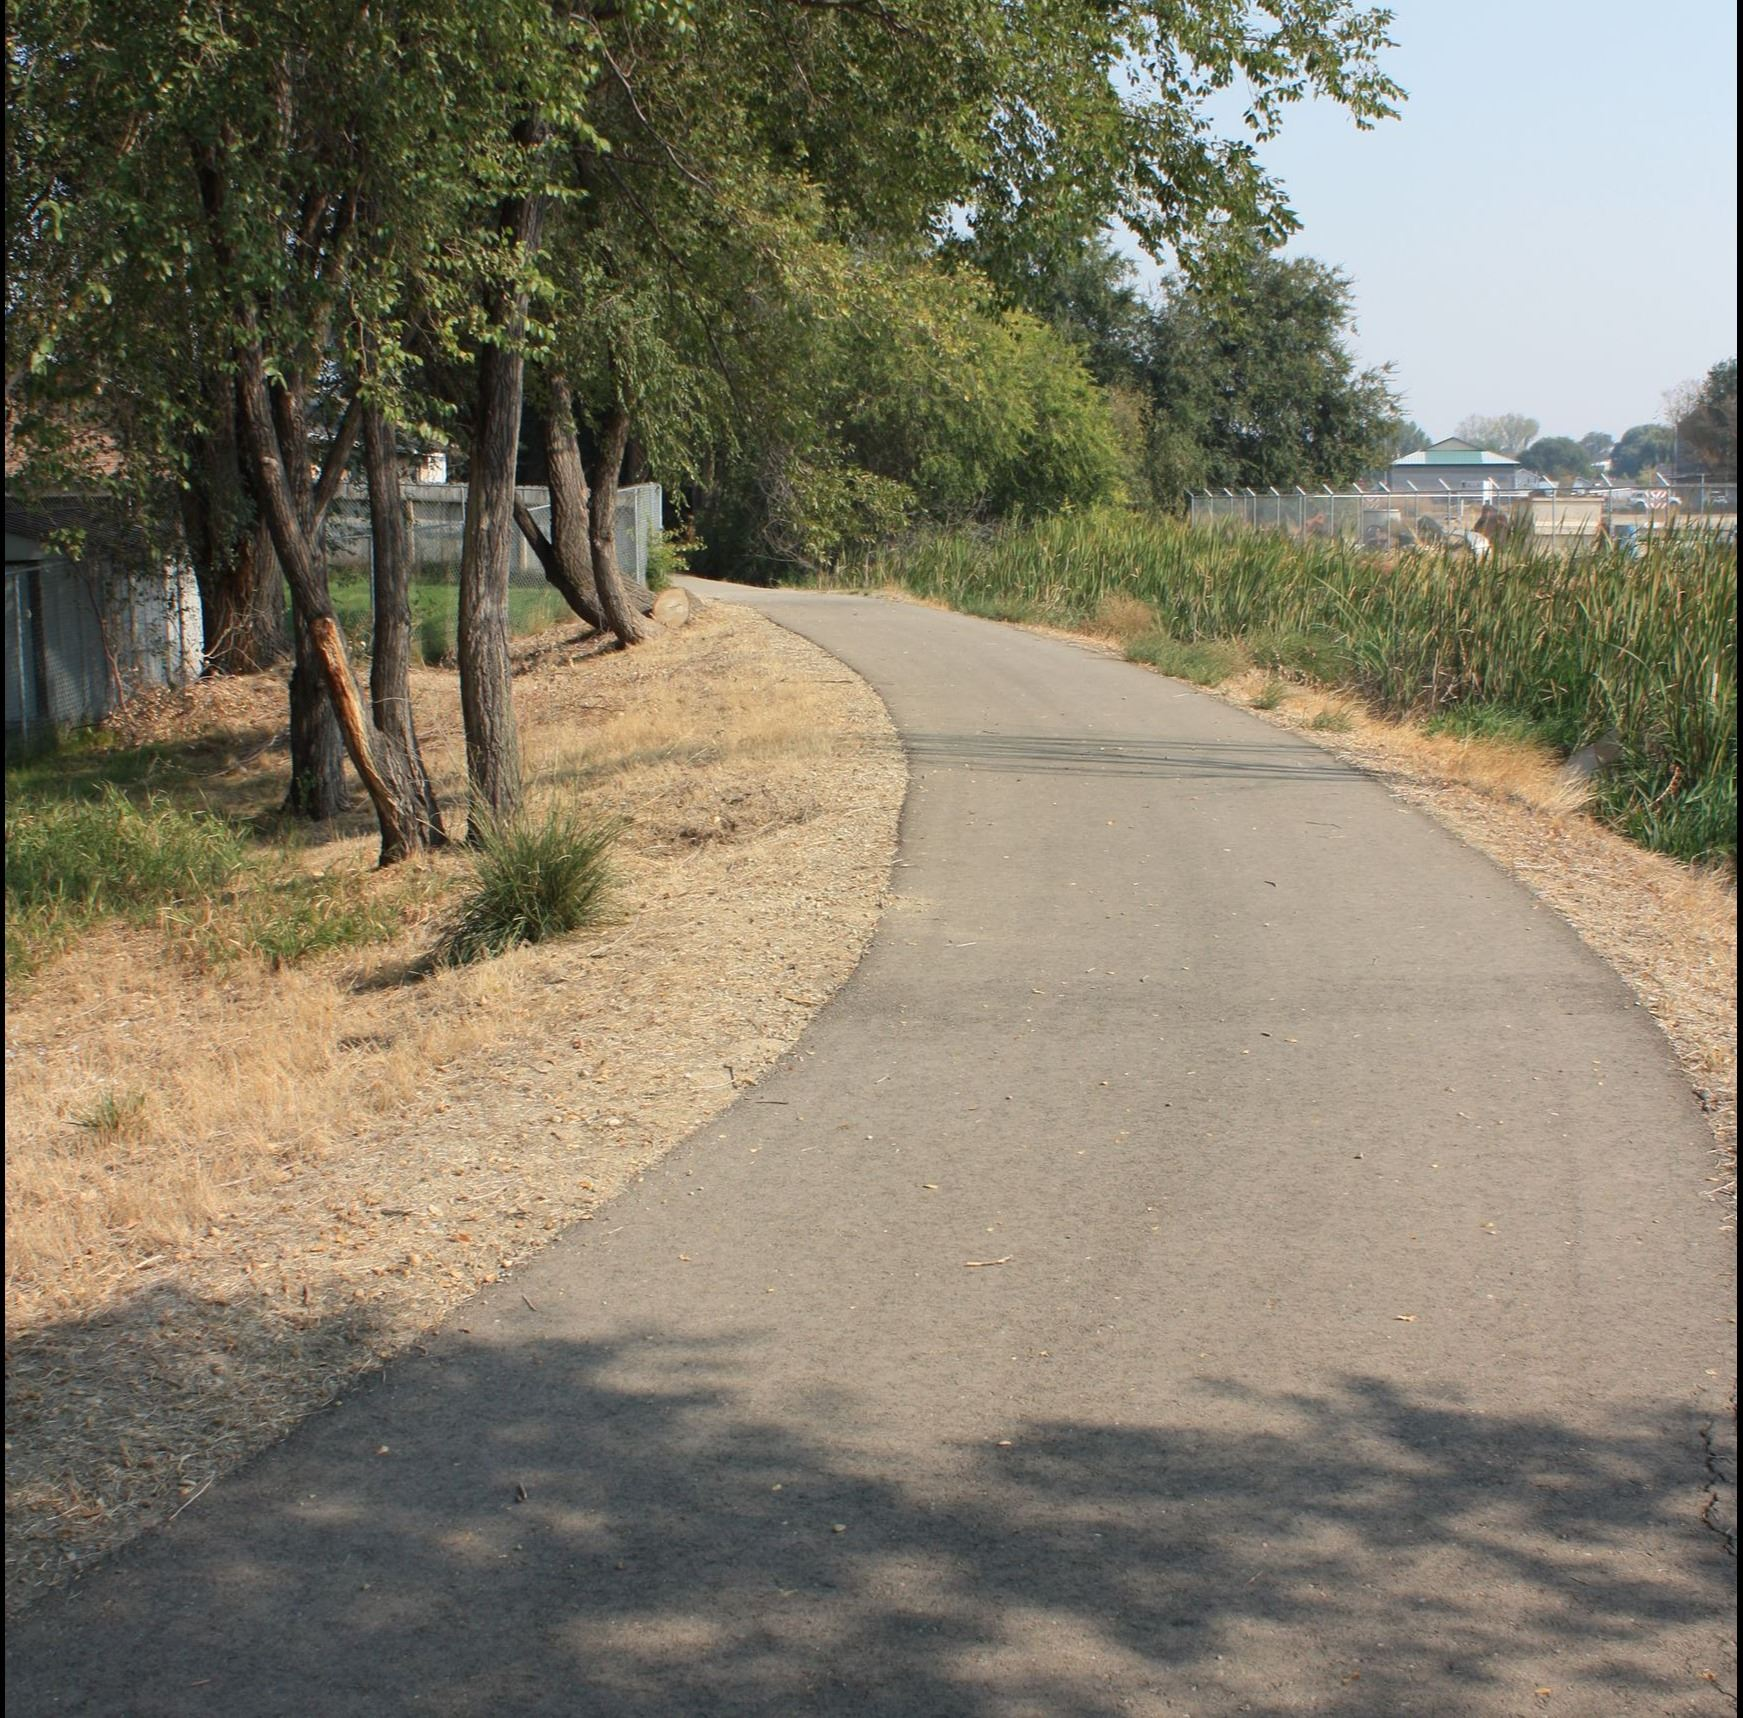 Paved pathway with trees on one side and tall grass on the other.